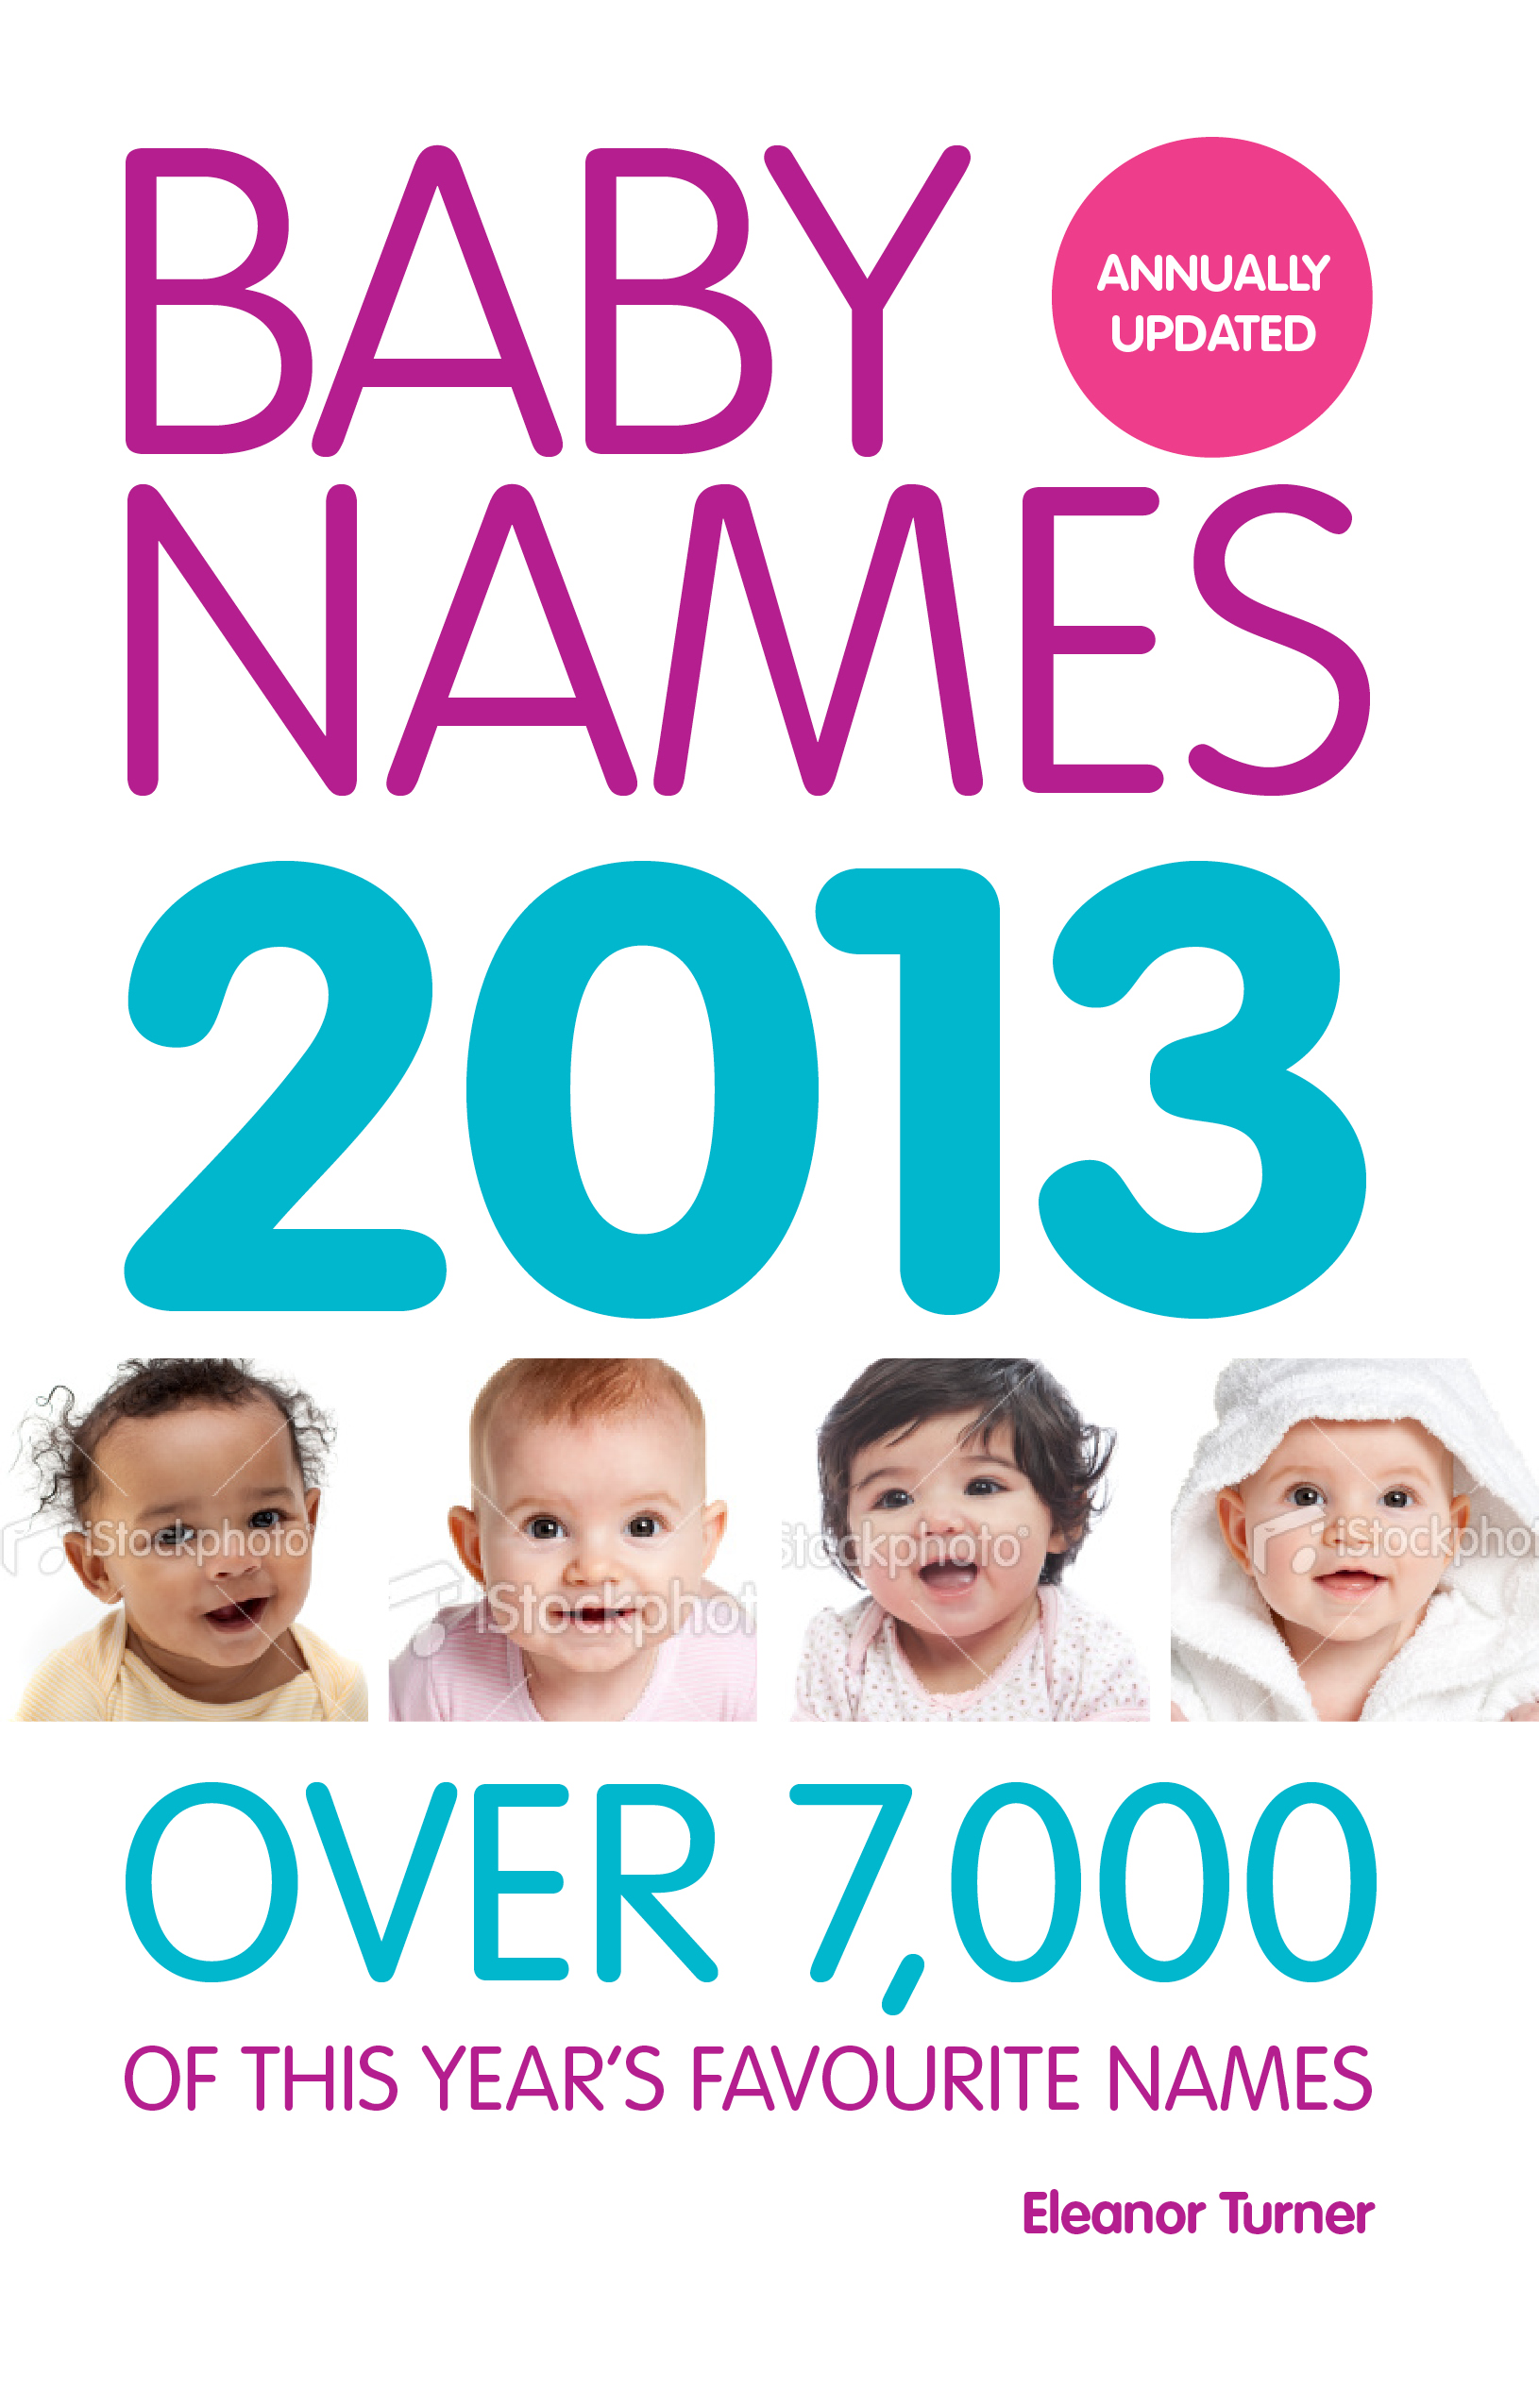 Baby Names 2013 By: Ella Joynes